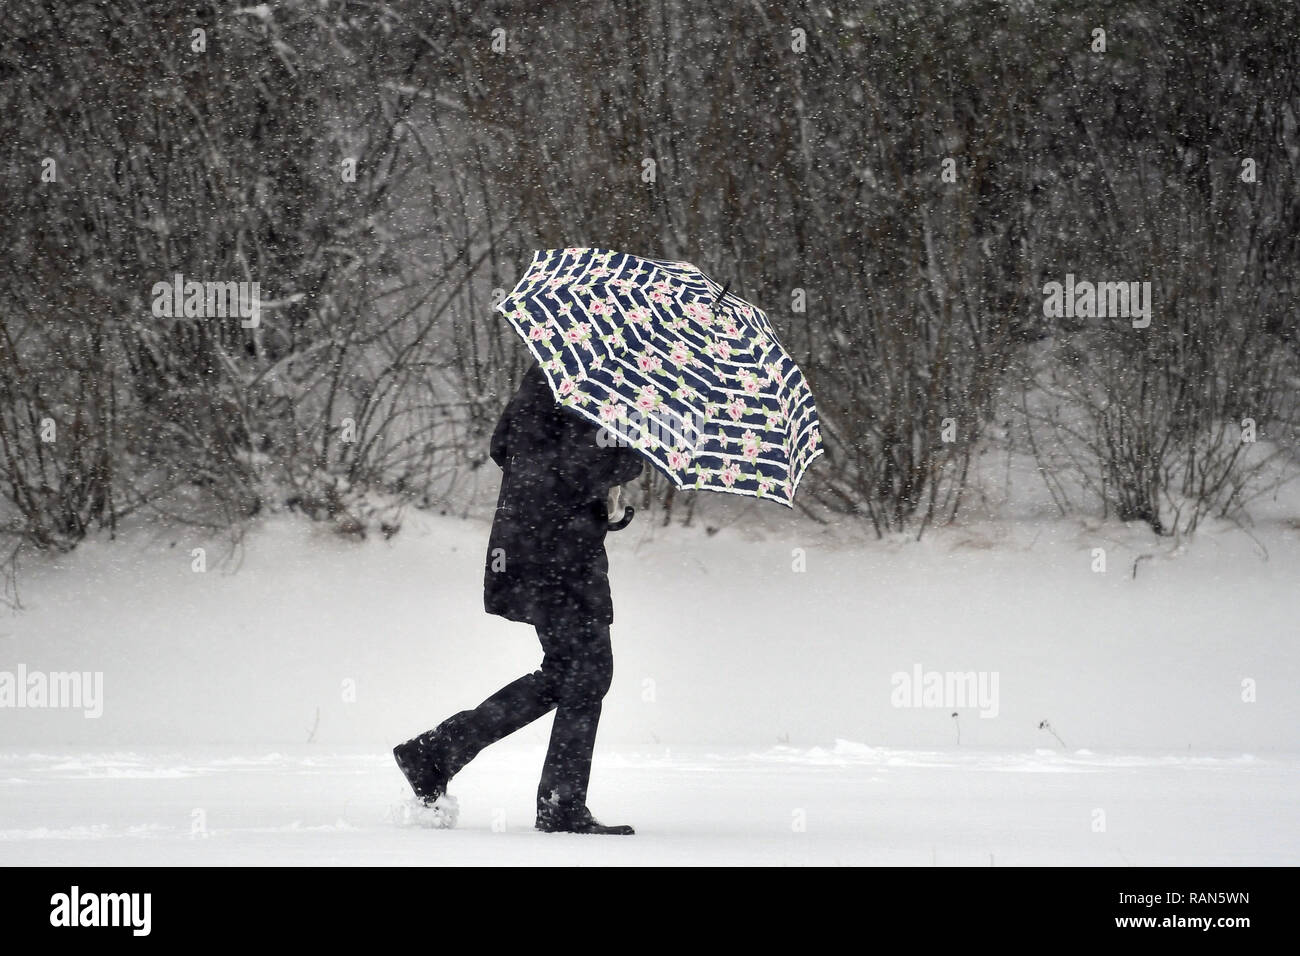 Munich Riem, Deutschland. 05th Jan, 2019. Weather Feature-A pedestrian with umbrella defies the snowdrifts and windbows on a snowy path in Riemer Park. Continuing snowfall on 05.01.2019, bring snow chaos, traffic chaos, winter in Bavaria. | usage worldwide Credit: dpa/Alamy Live News Credit: dpa picture alliance/Alamy Live News - Stock Image